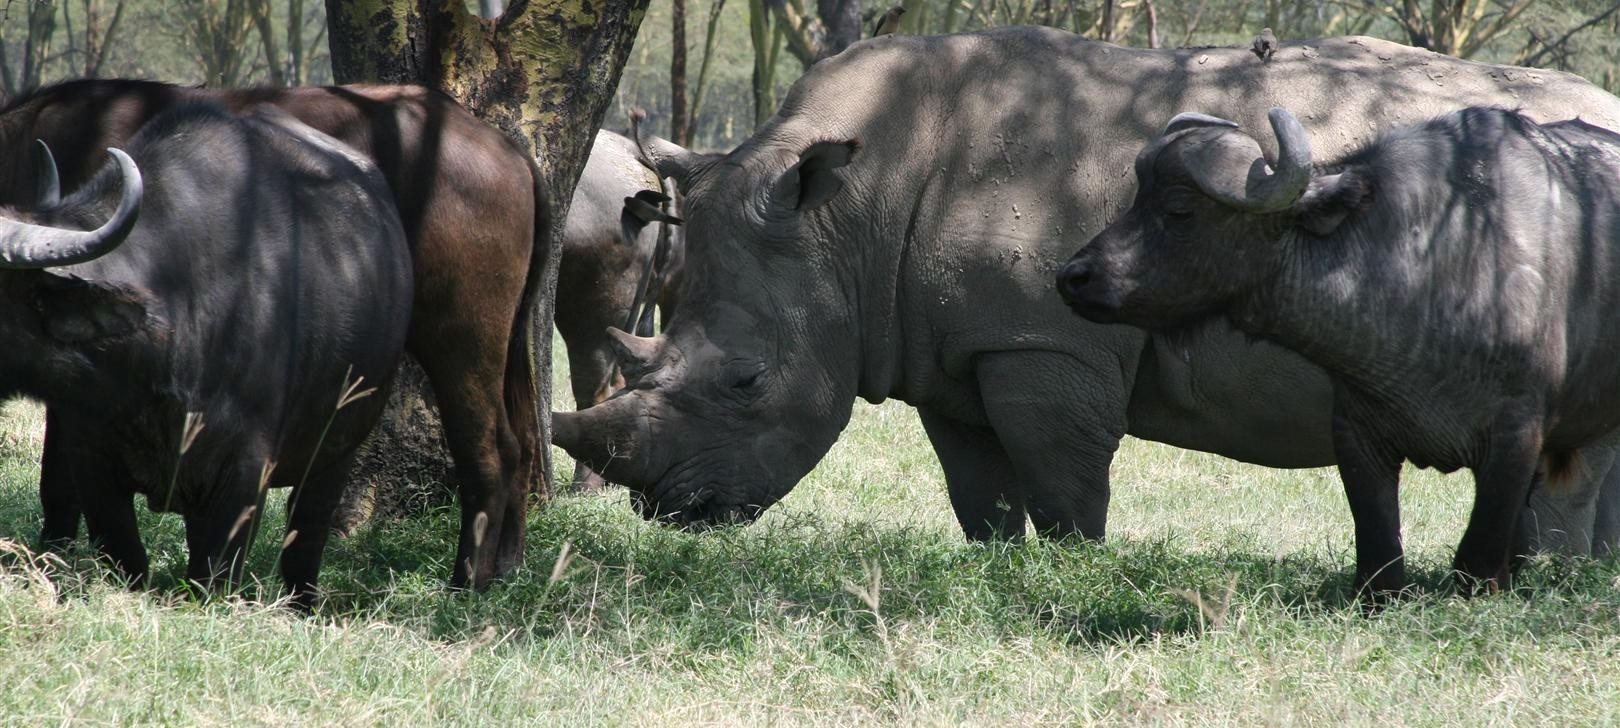 rhino and buffalo at Nakuru more (photo by Steward Shang)